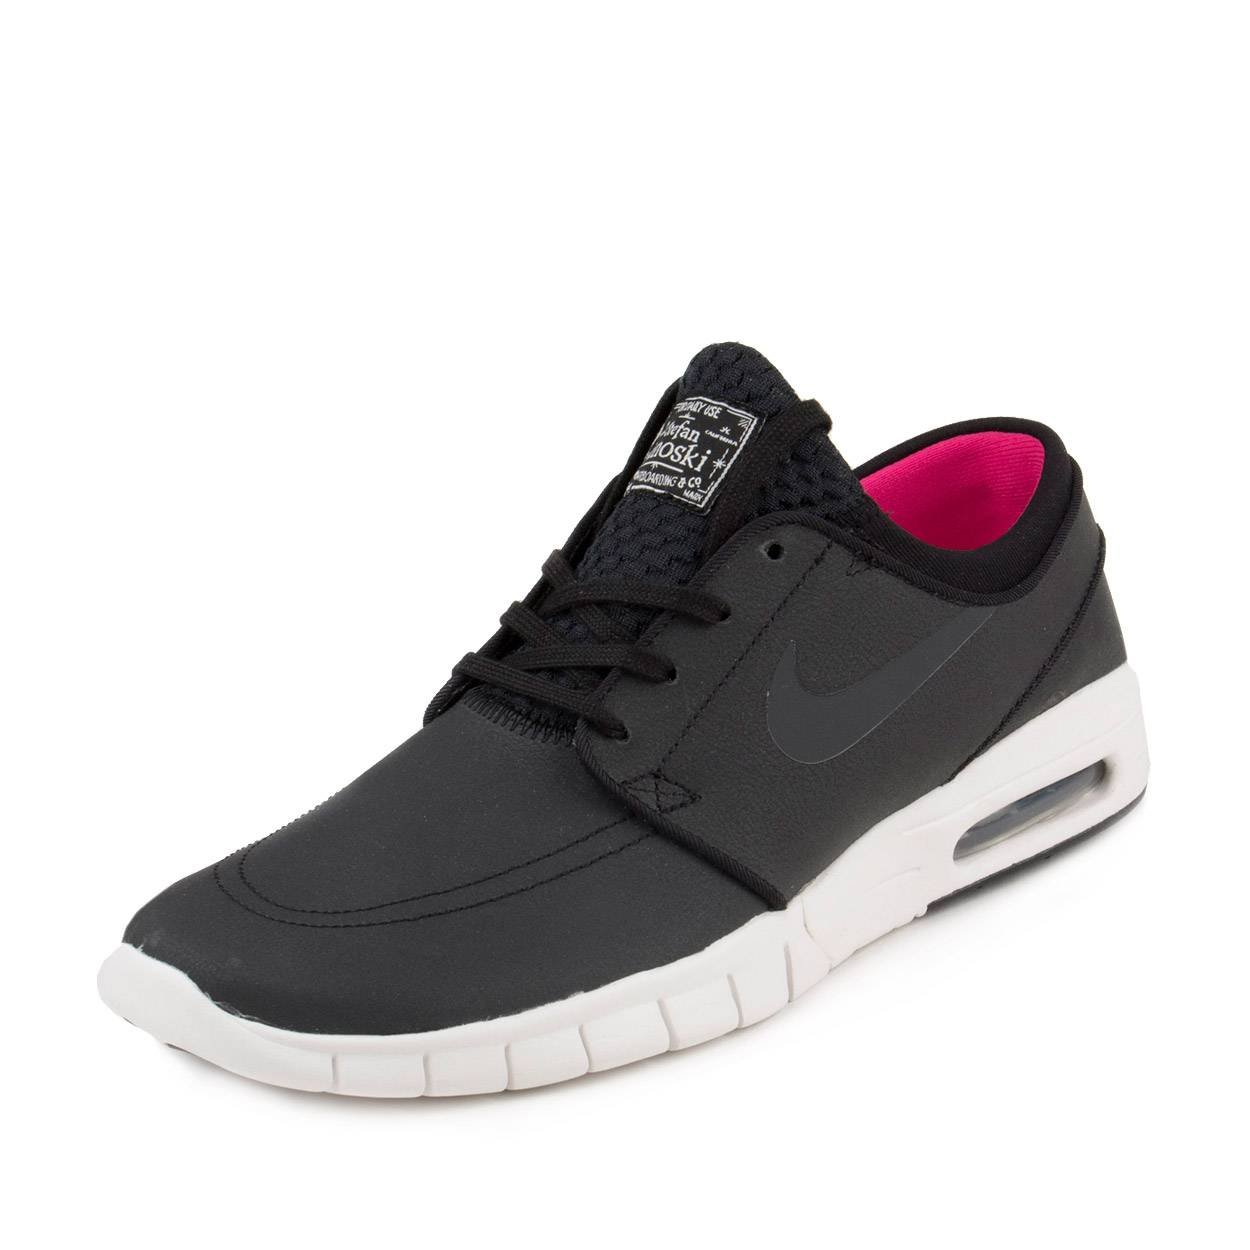 san francisco b0e2d 3bb3f Galleon - NIKE SB Zoom Stefan Janoski Max Suede Black Anthracite Summit  White Hyper Pink Skate Shoes-Men 12.0, Women 13.5